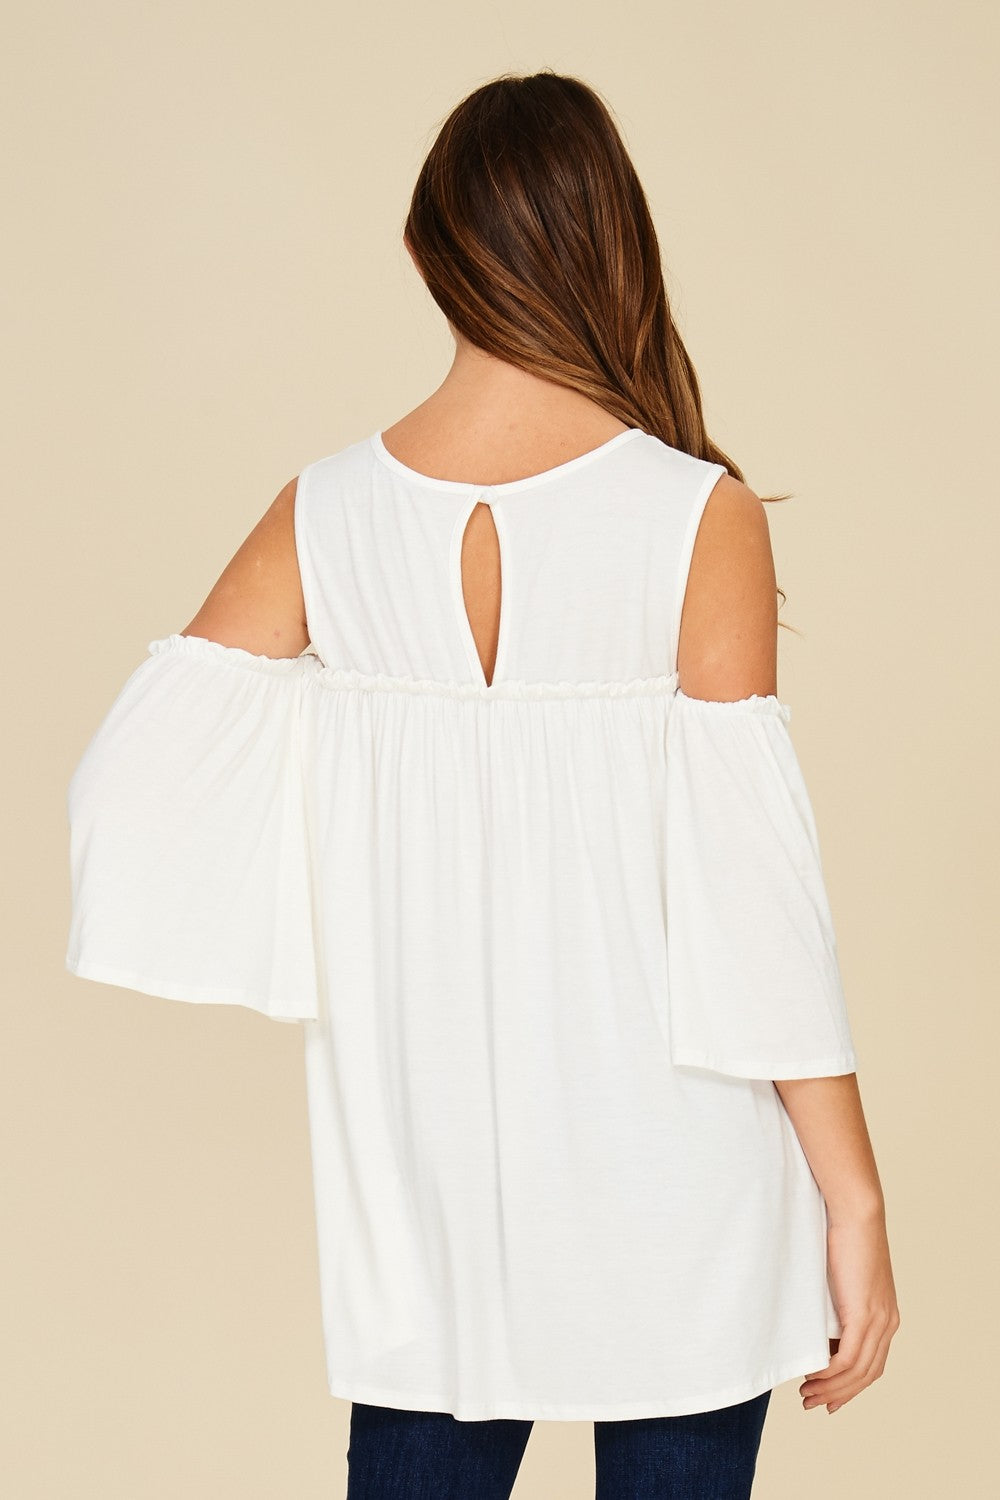 Back View White cold shoulder knit tunic top with three quarter bell sleeves